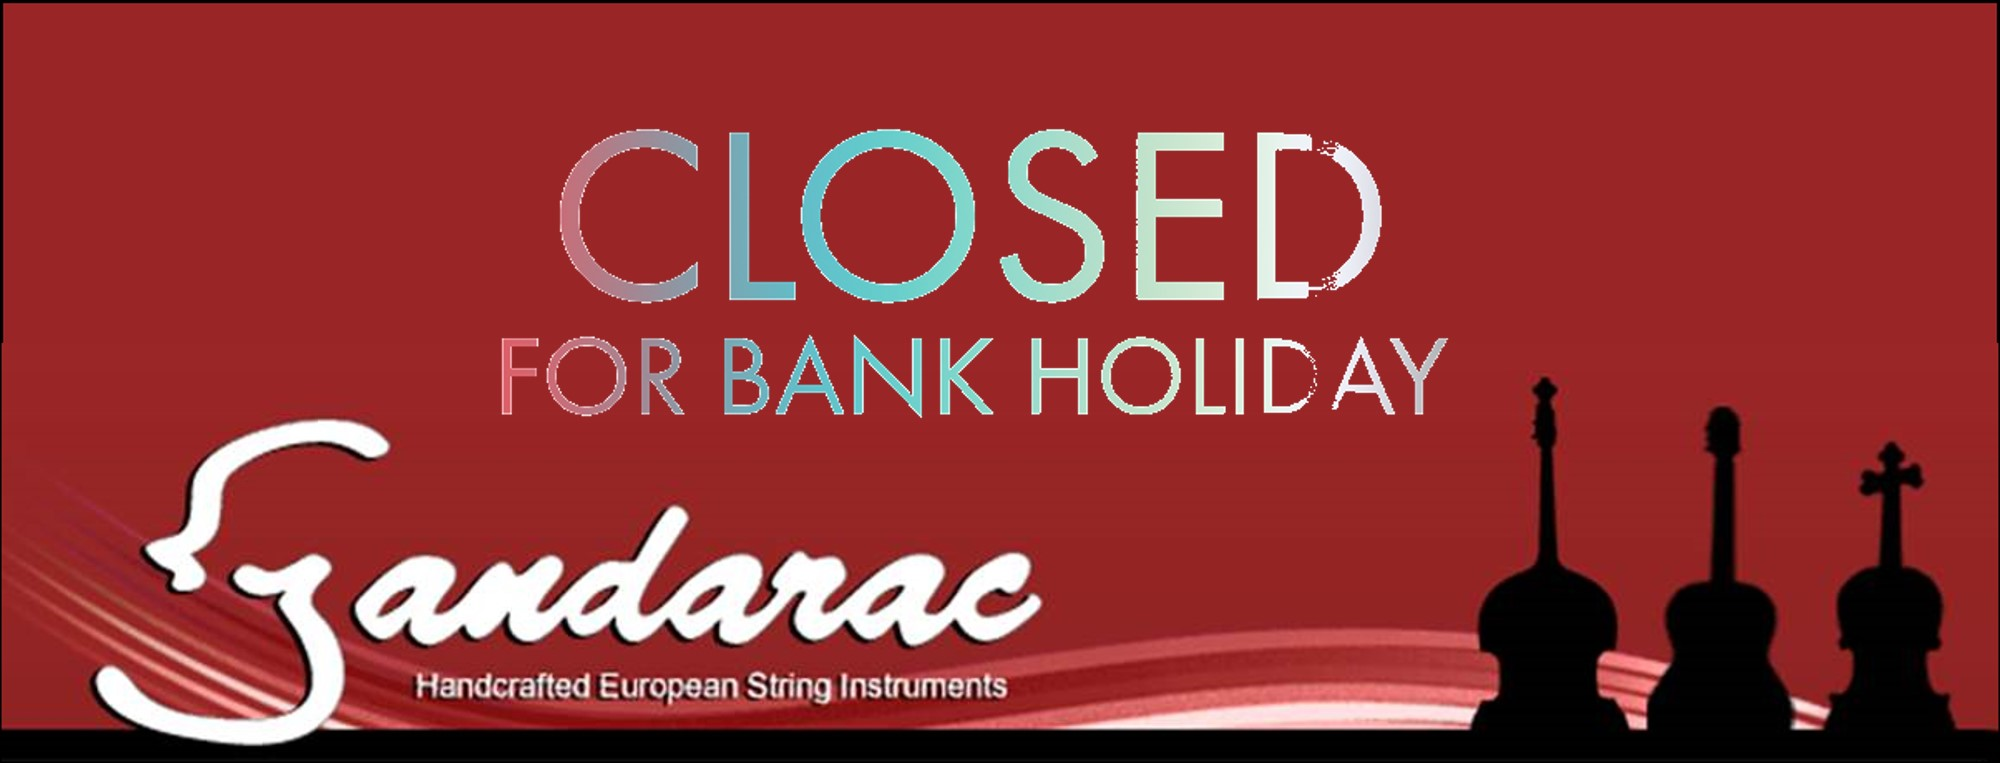 23 - closed for bank holiday